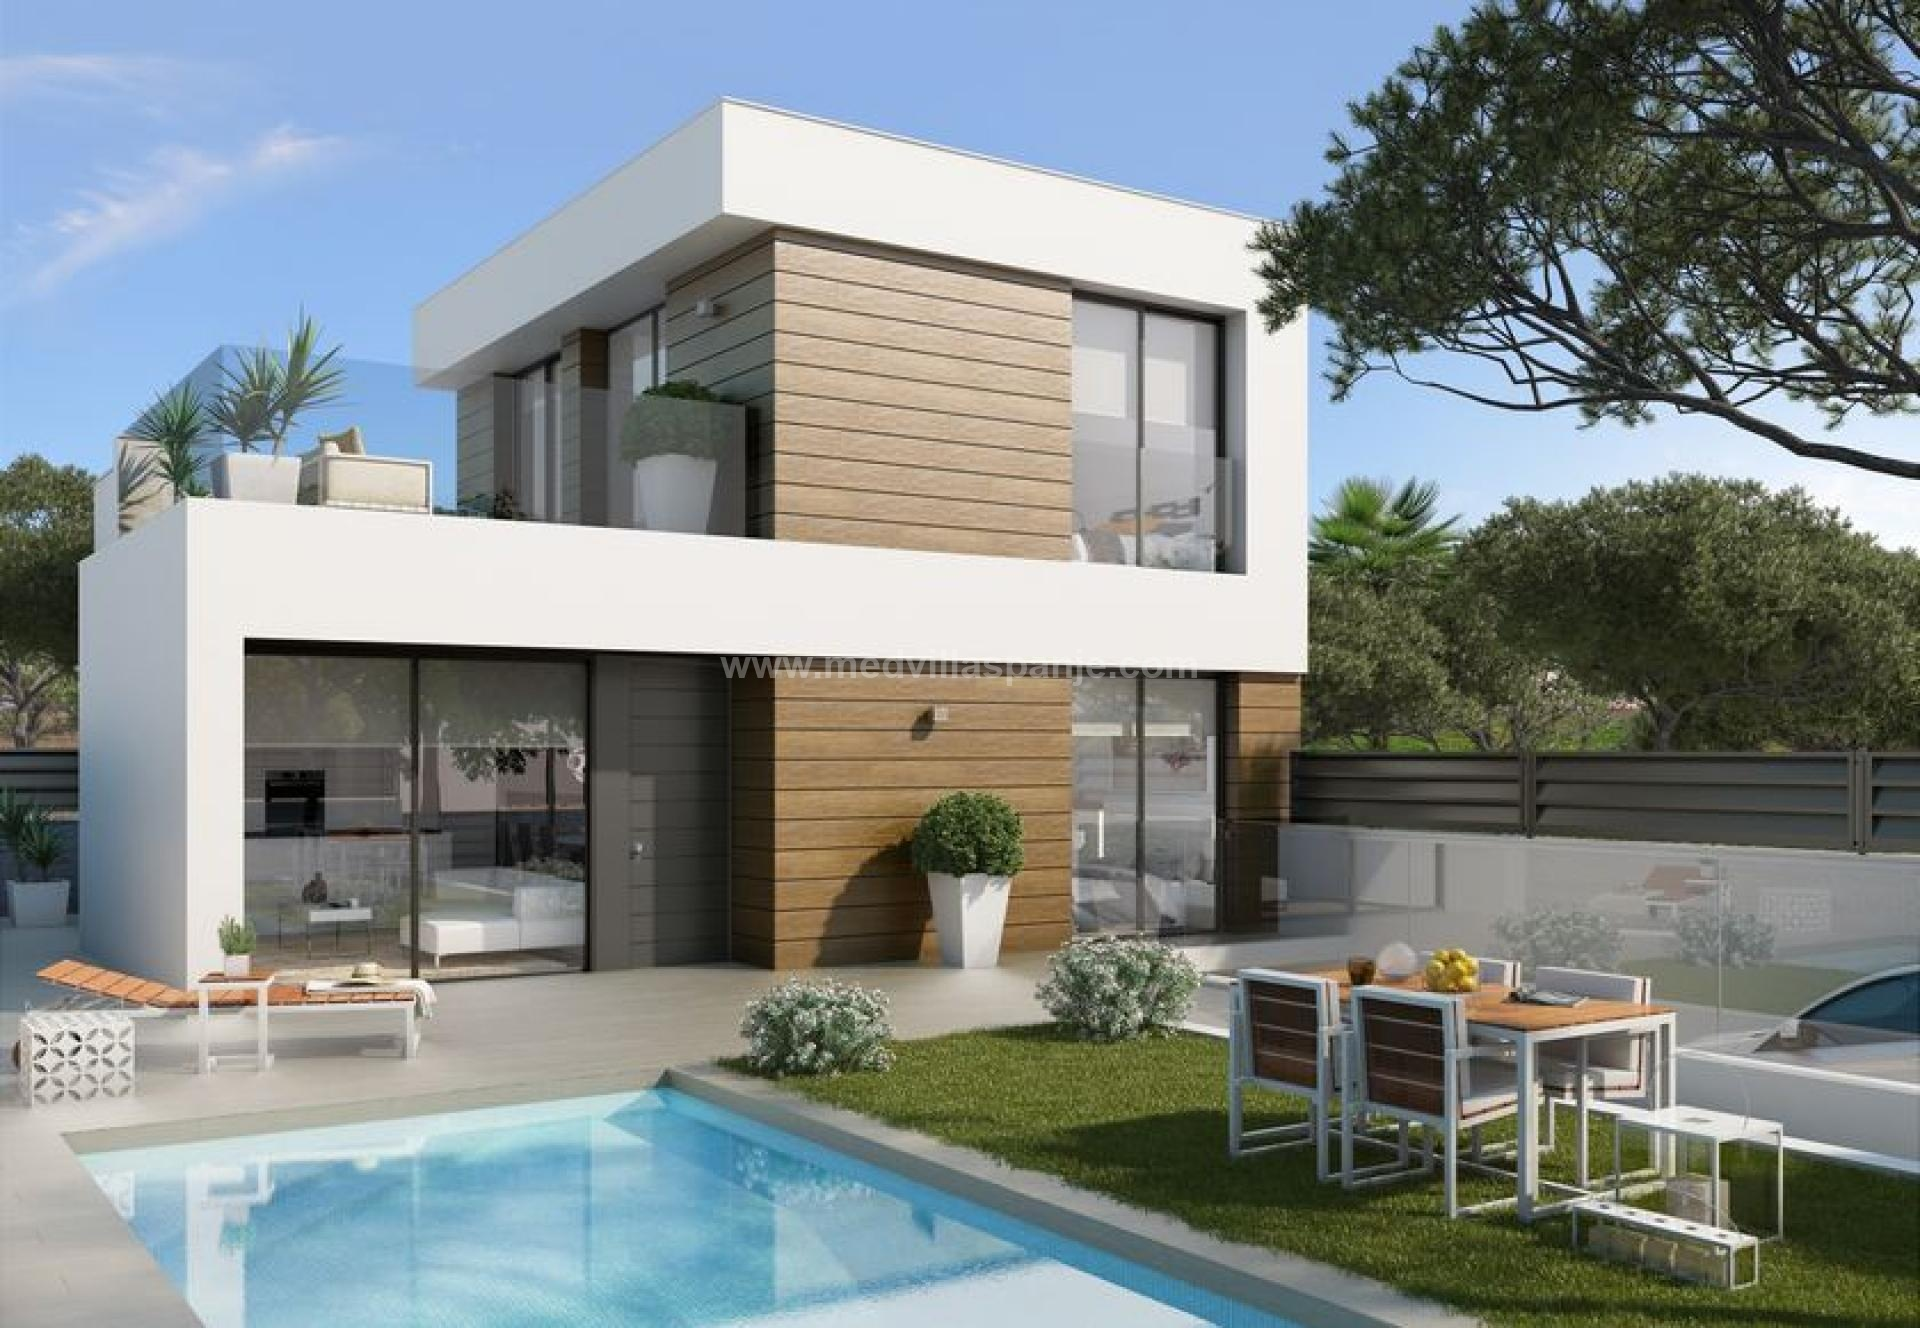 3 bedroom Villa in El Campello - New build in Medvilla Spanje